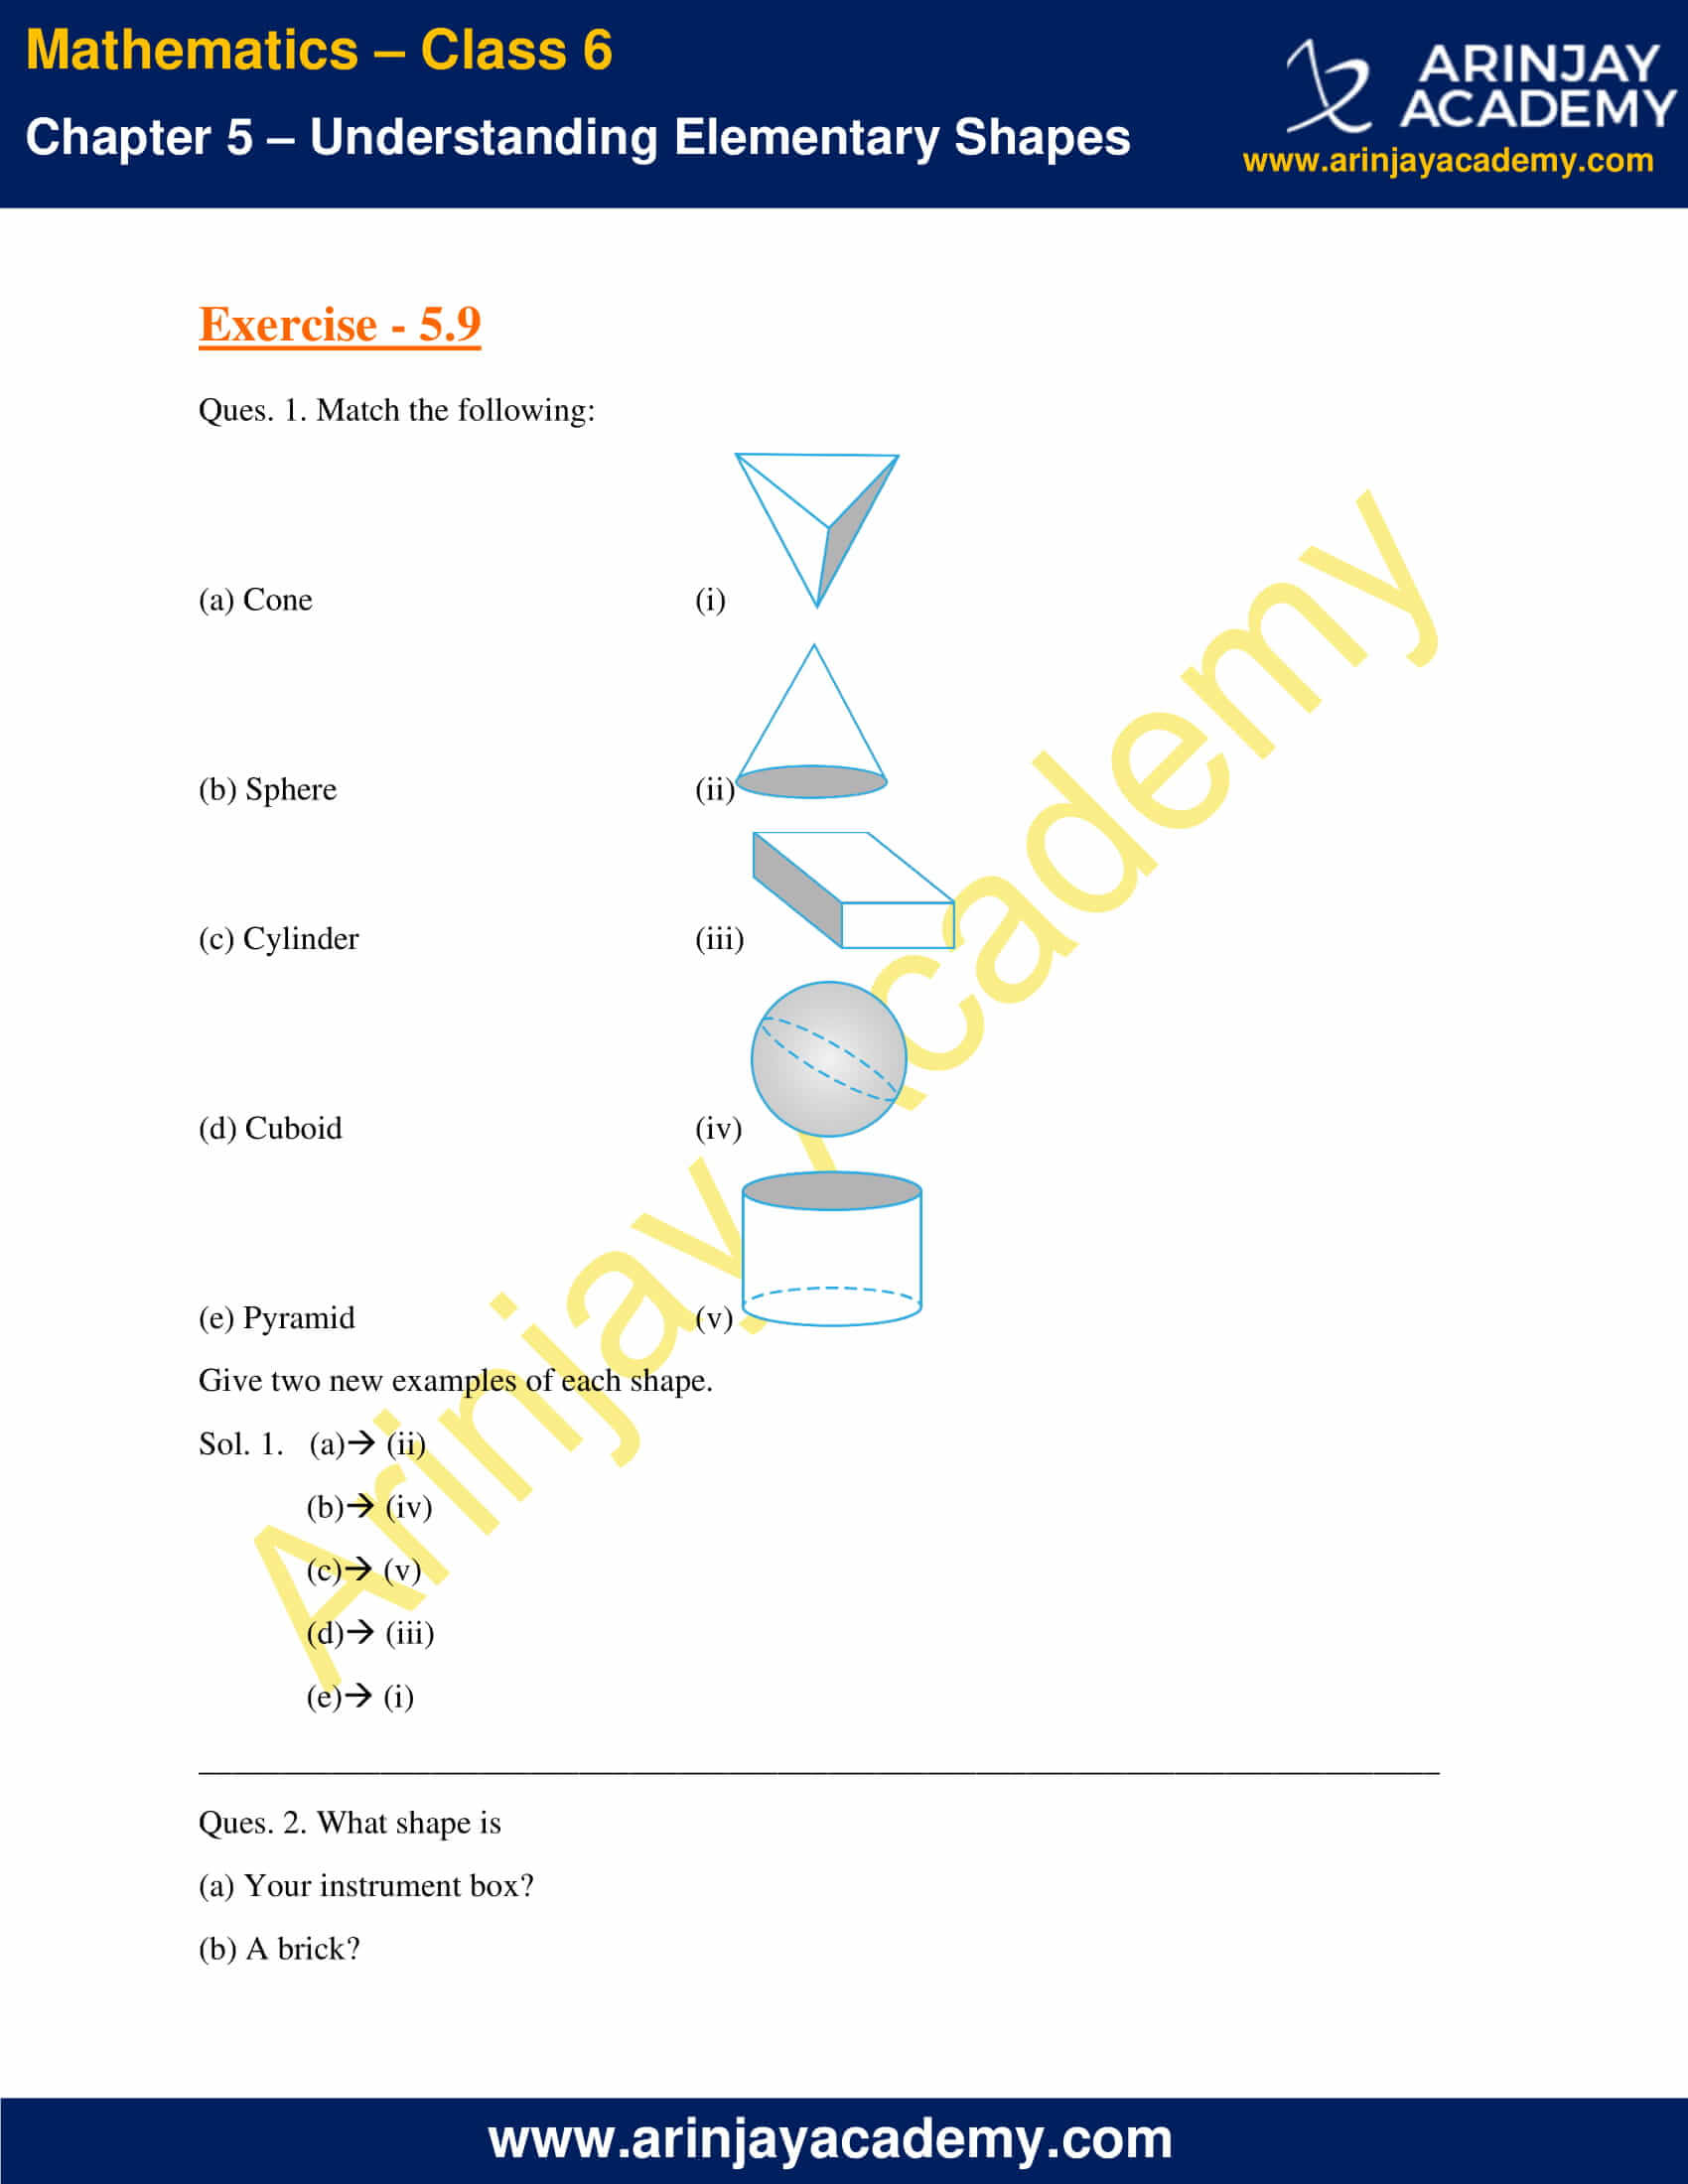 NCERT Solutions for Class 6 Maths Chapter 5 Exercise 5.9 image 1